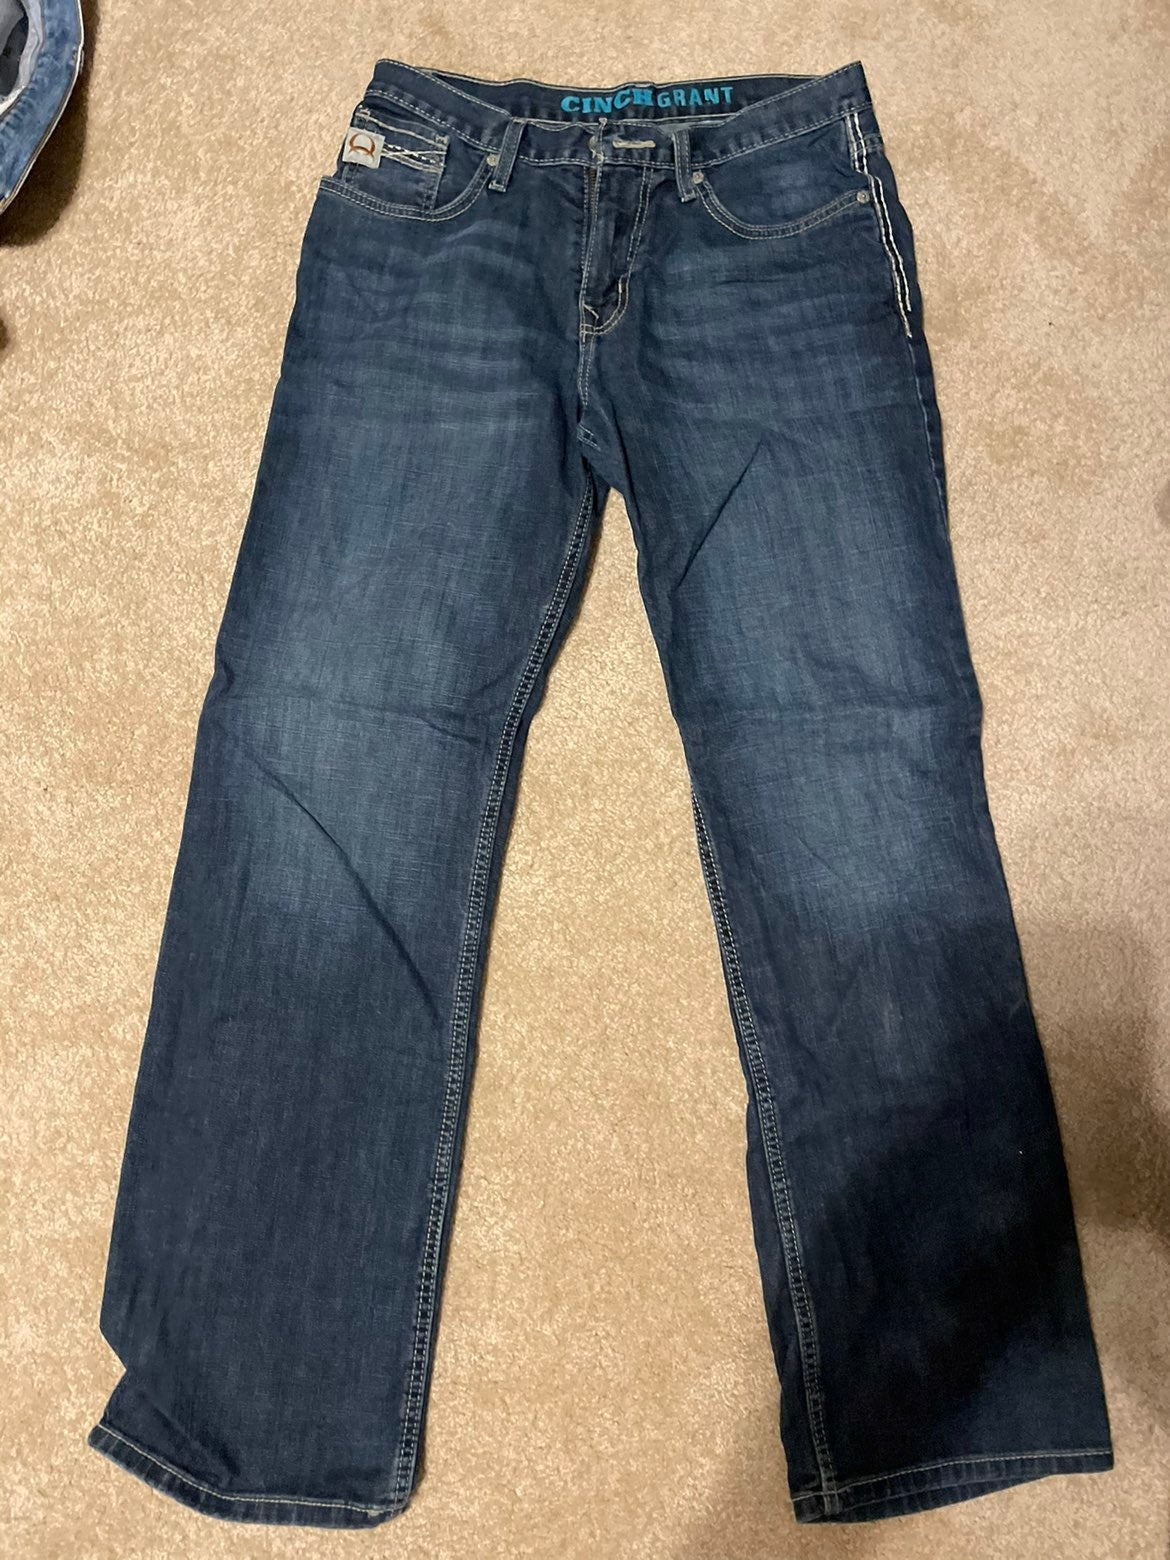 Mens clinch jeans